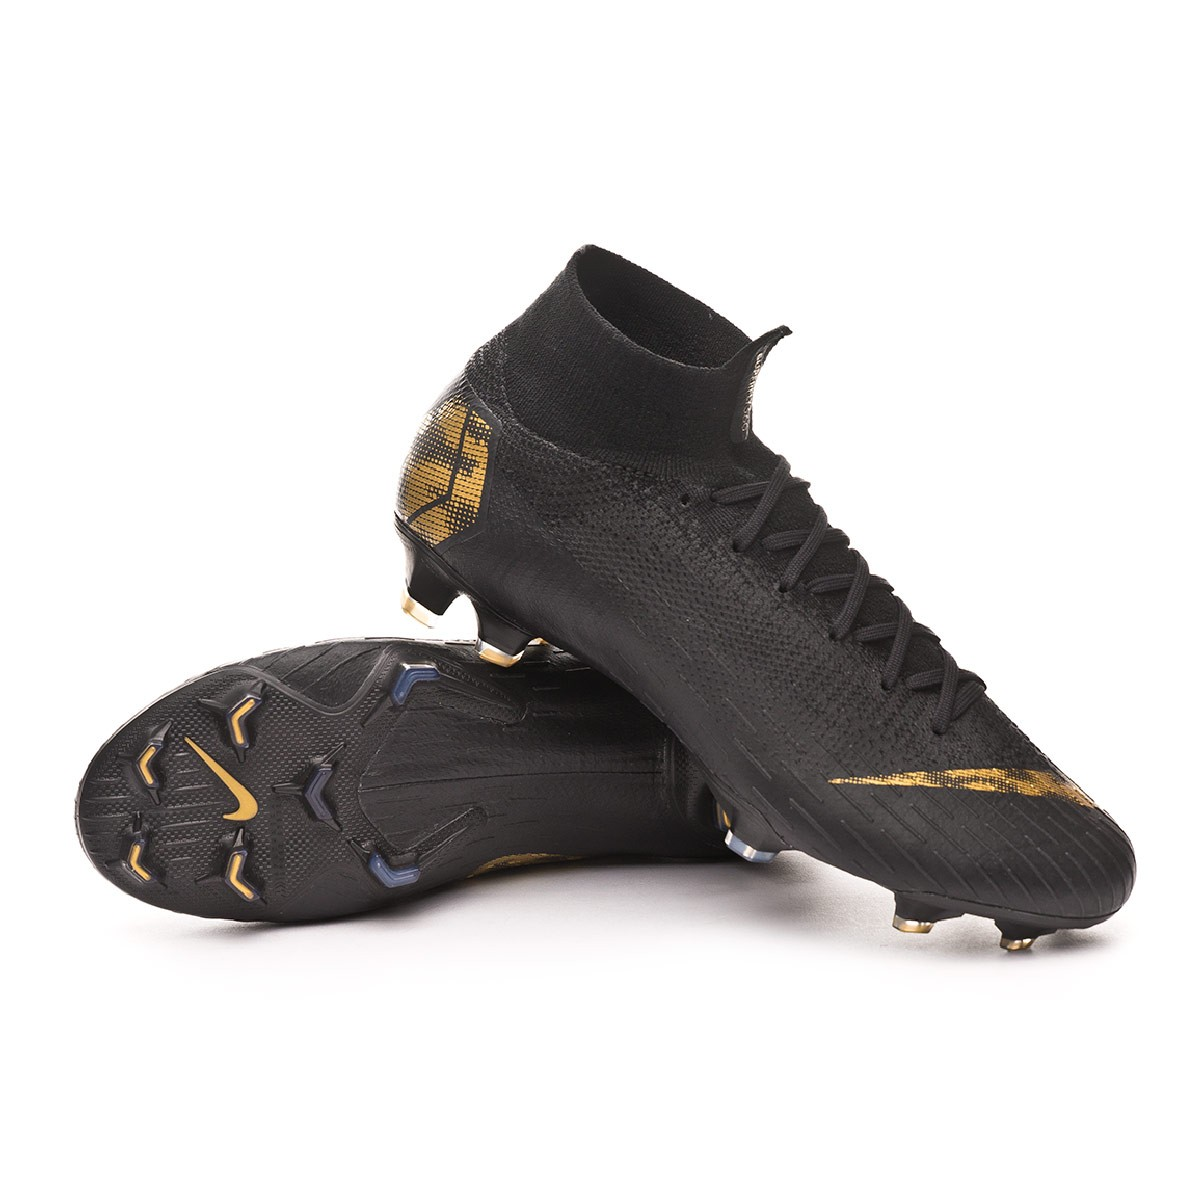 96dd731c5 Nike Mercurial Superfly VI Elite FG Football Boots. Black-Metallic vivid  gold ...